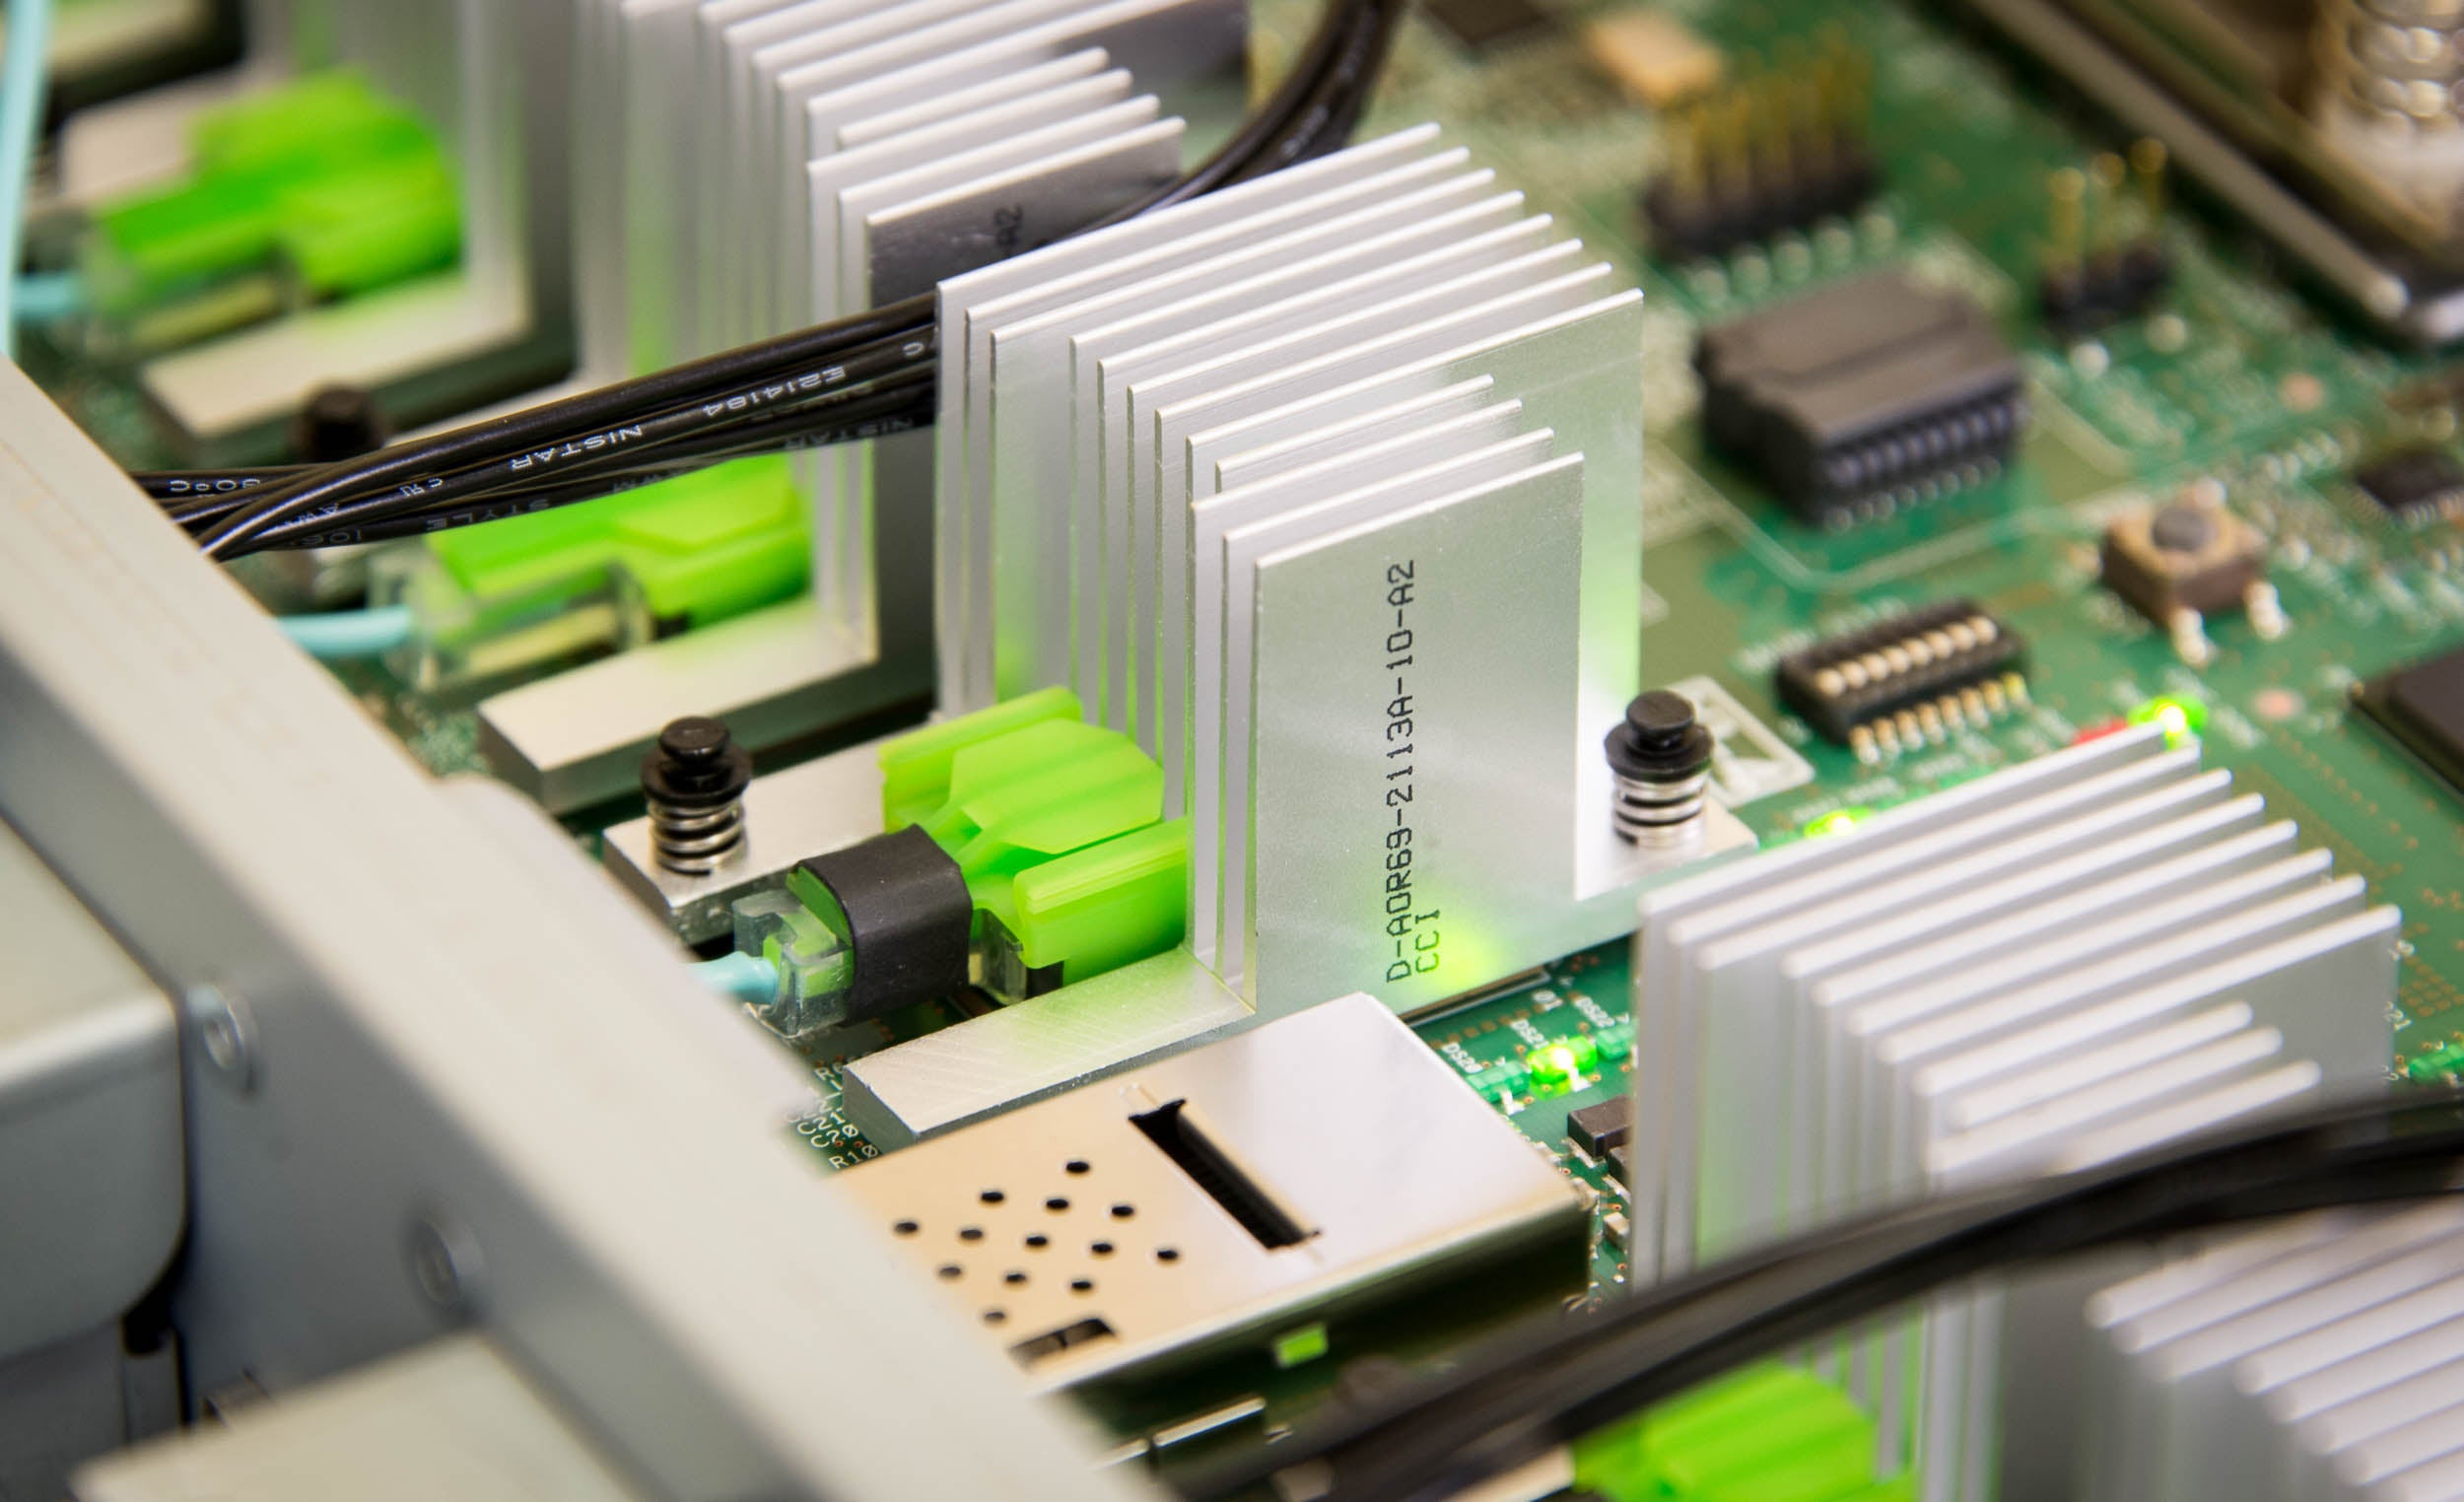 Hpe Debuts Its Next Gen Computer Sans Much Anticipated Memristors Scientists Create Circuit Board Modeled On The Human Brain W Video Close Up Of An Electronic In Hpes Memory Driven Computing Prototype Fort Collins Colo New Architecture Collapses And